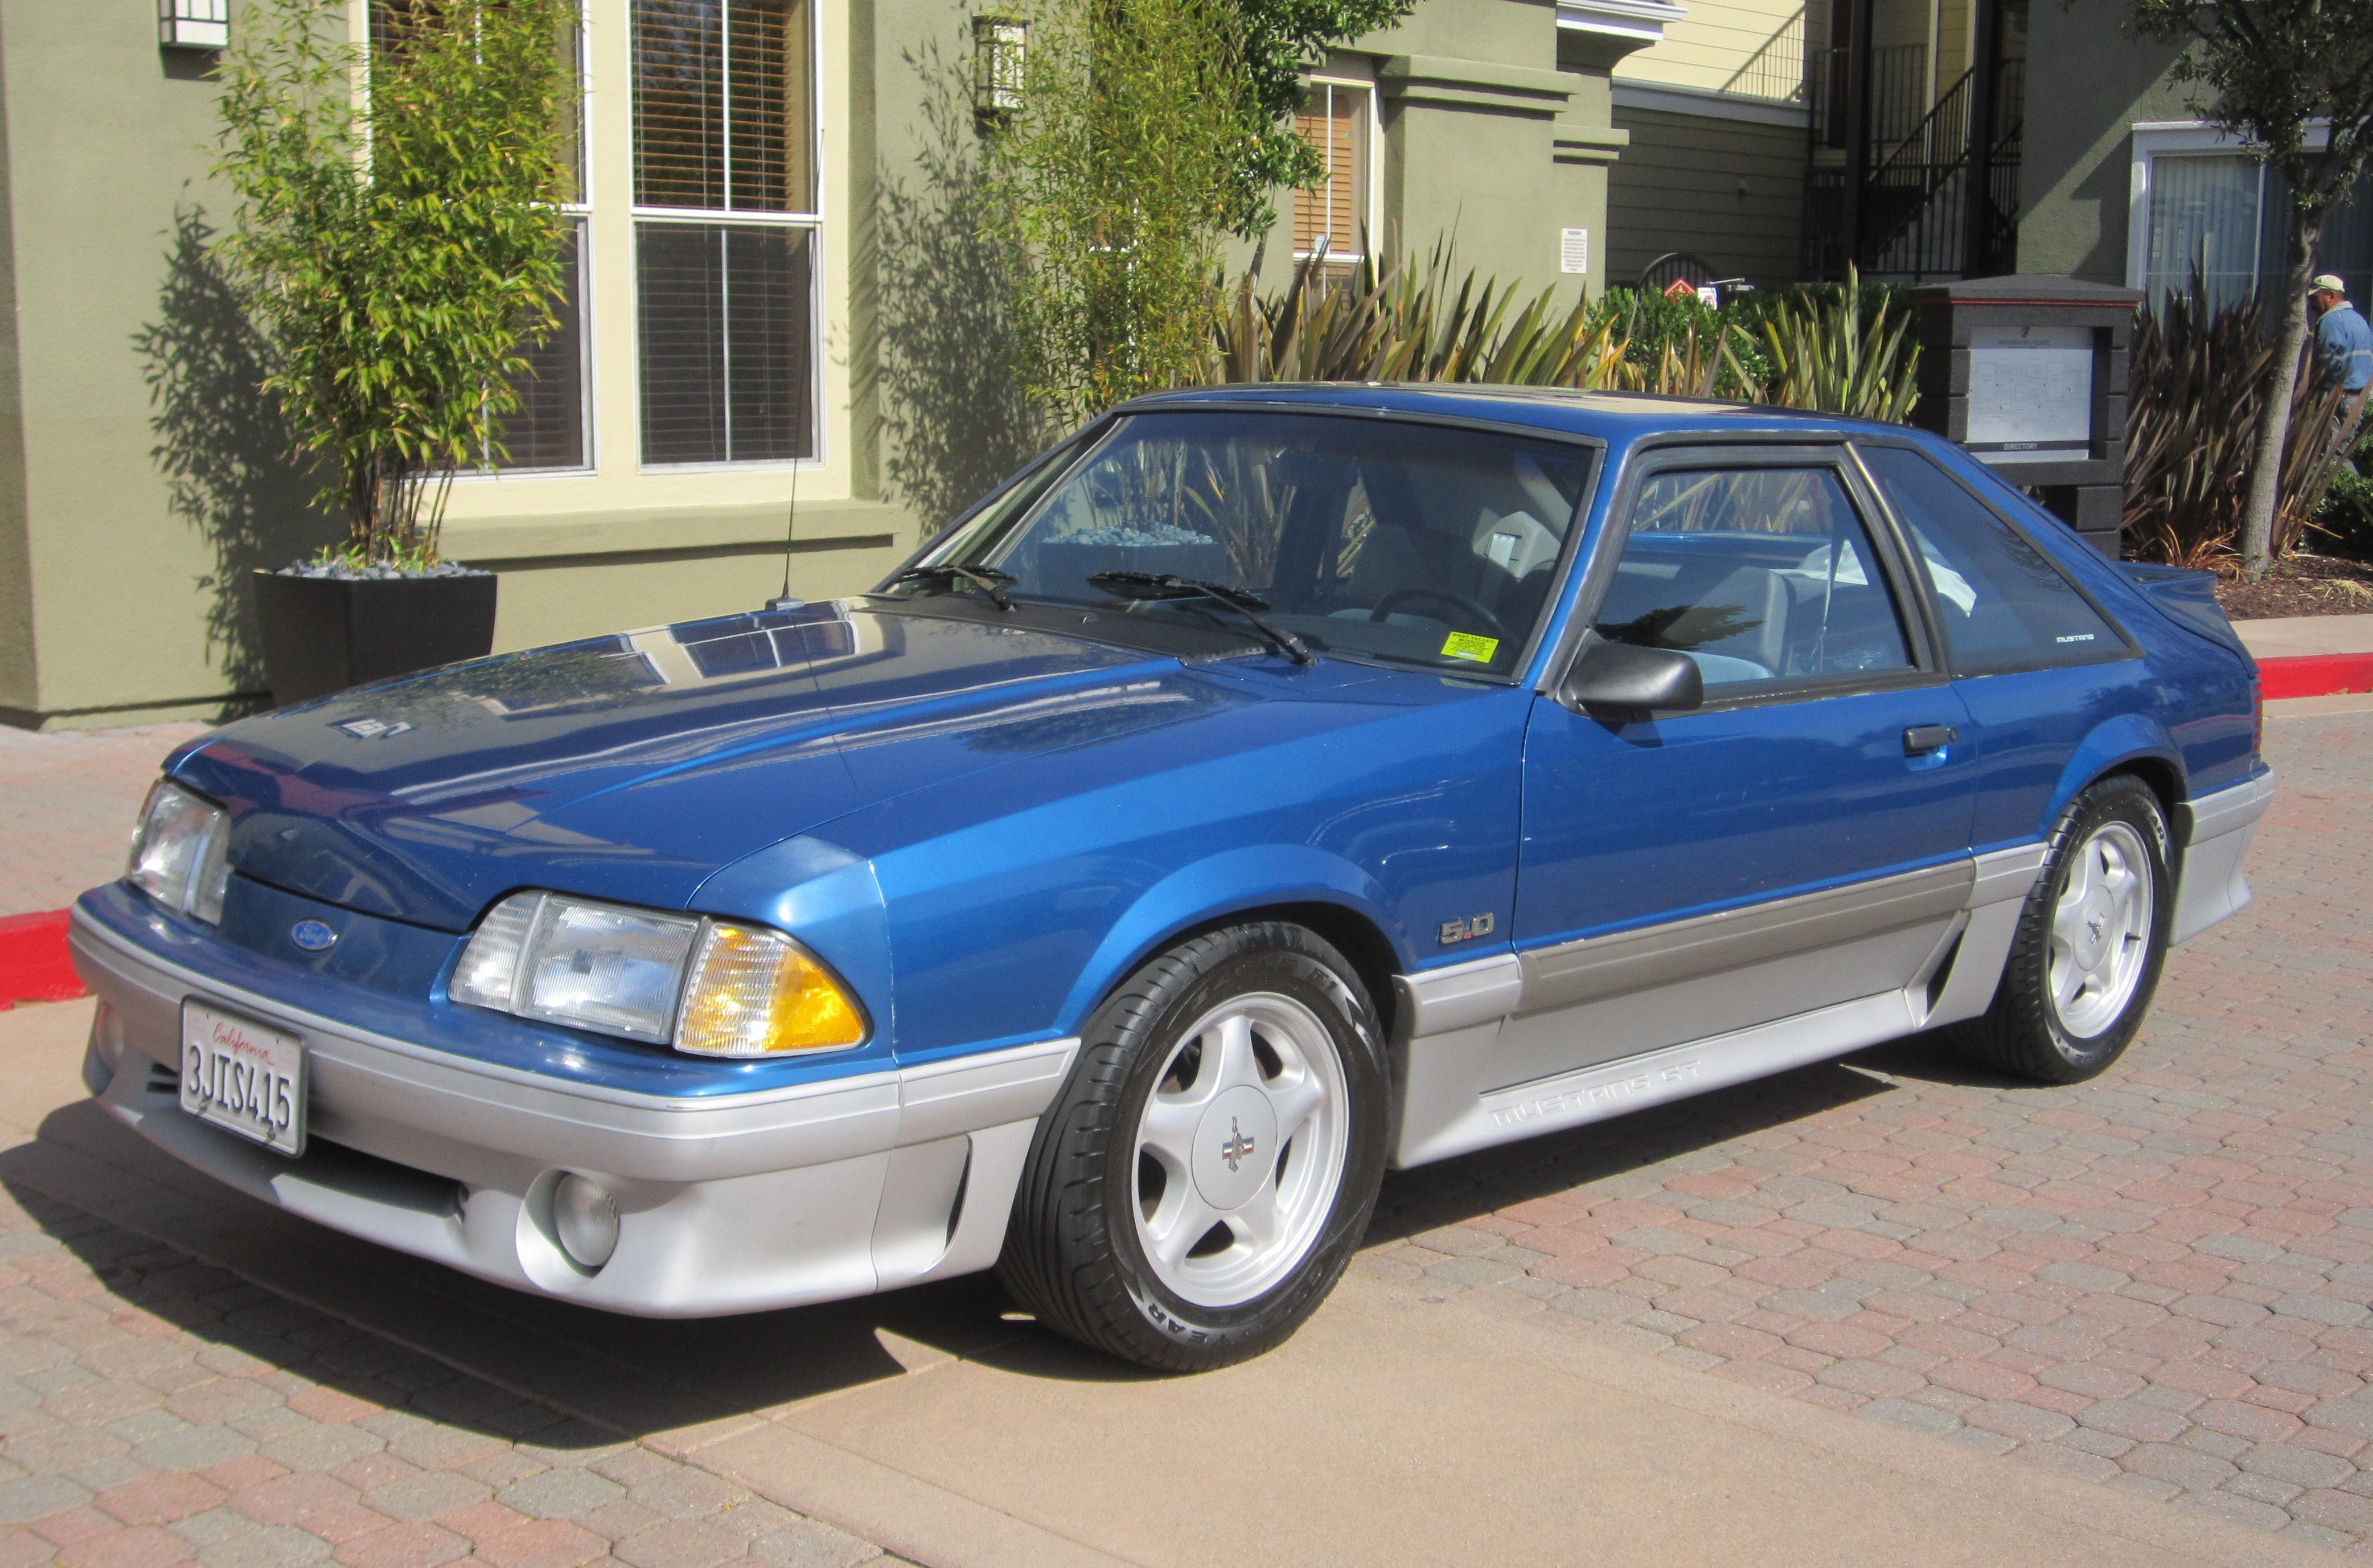 Z-Car Blog » Post Topic » Foxy 5.0: Kevin's '92 Mustang